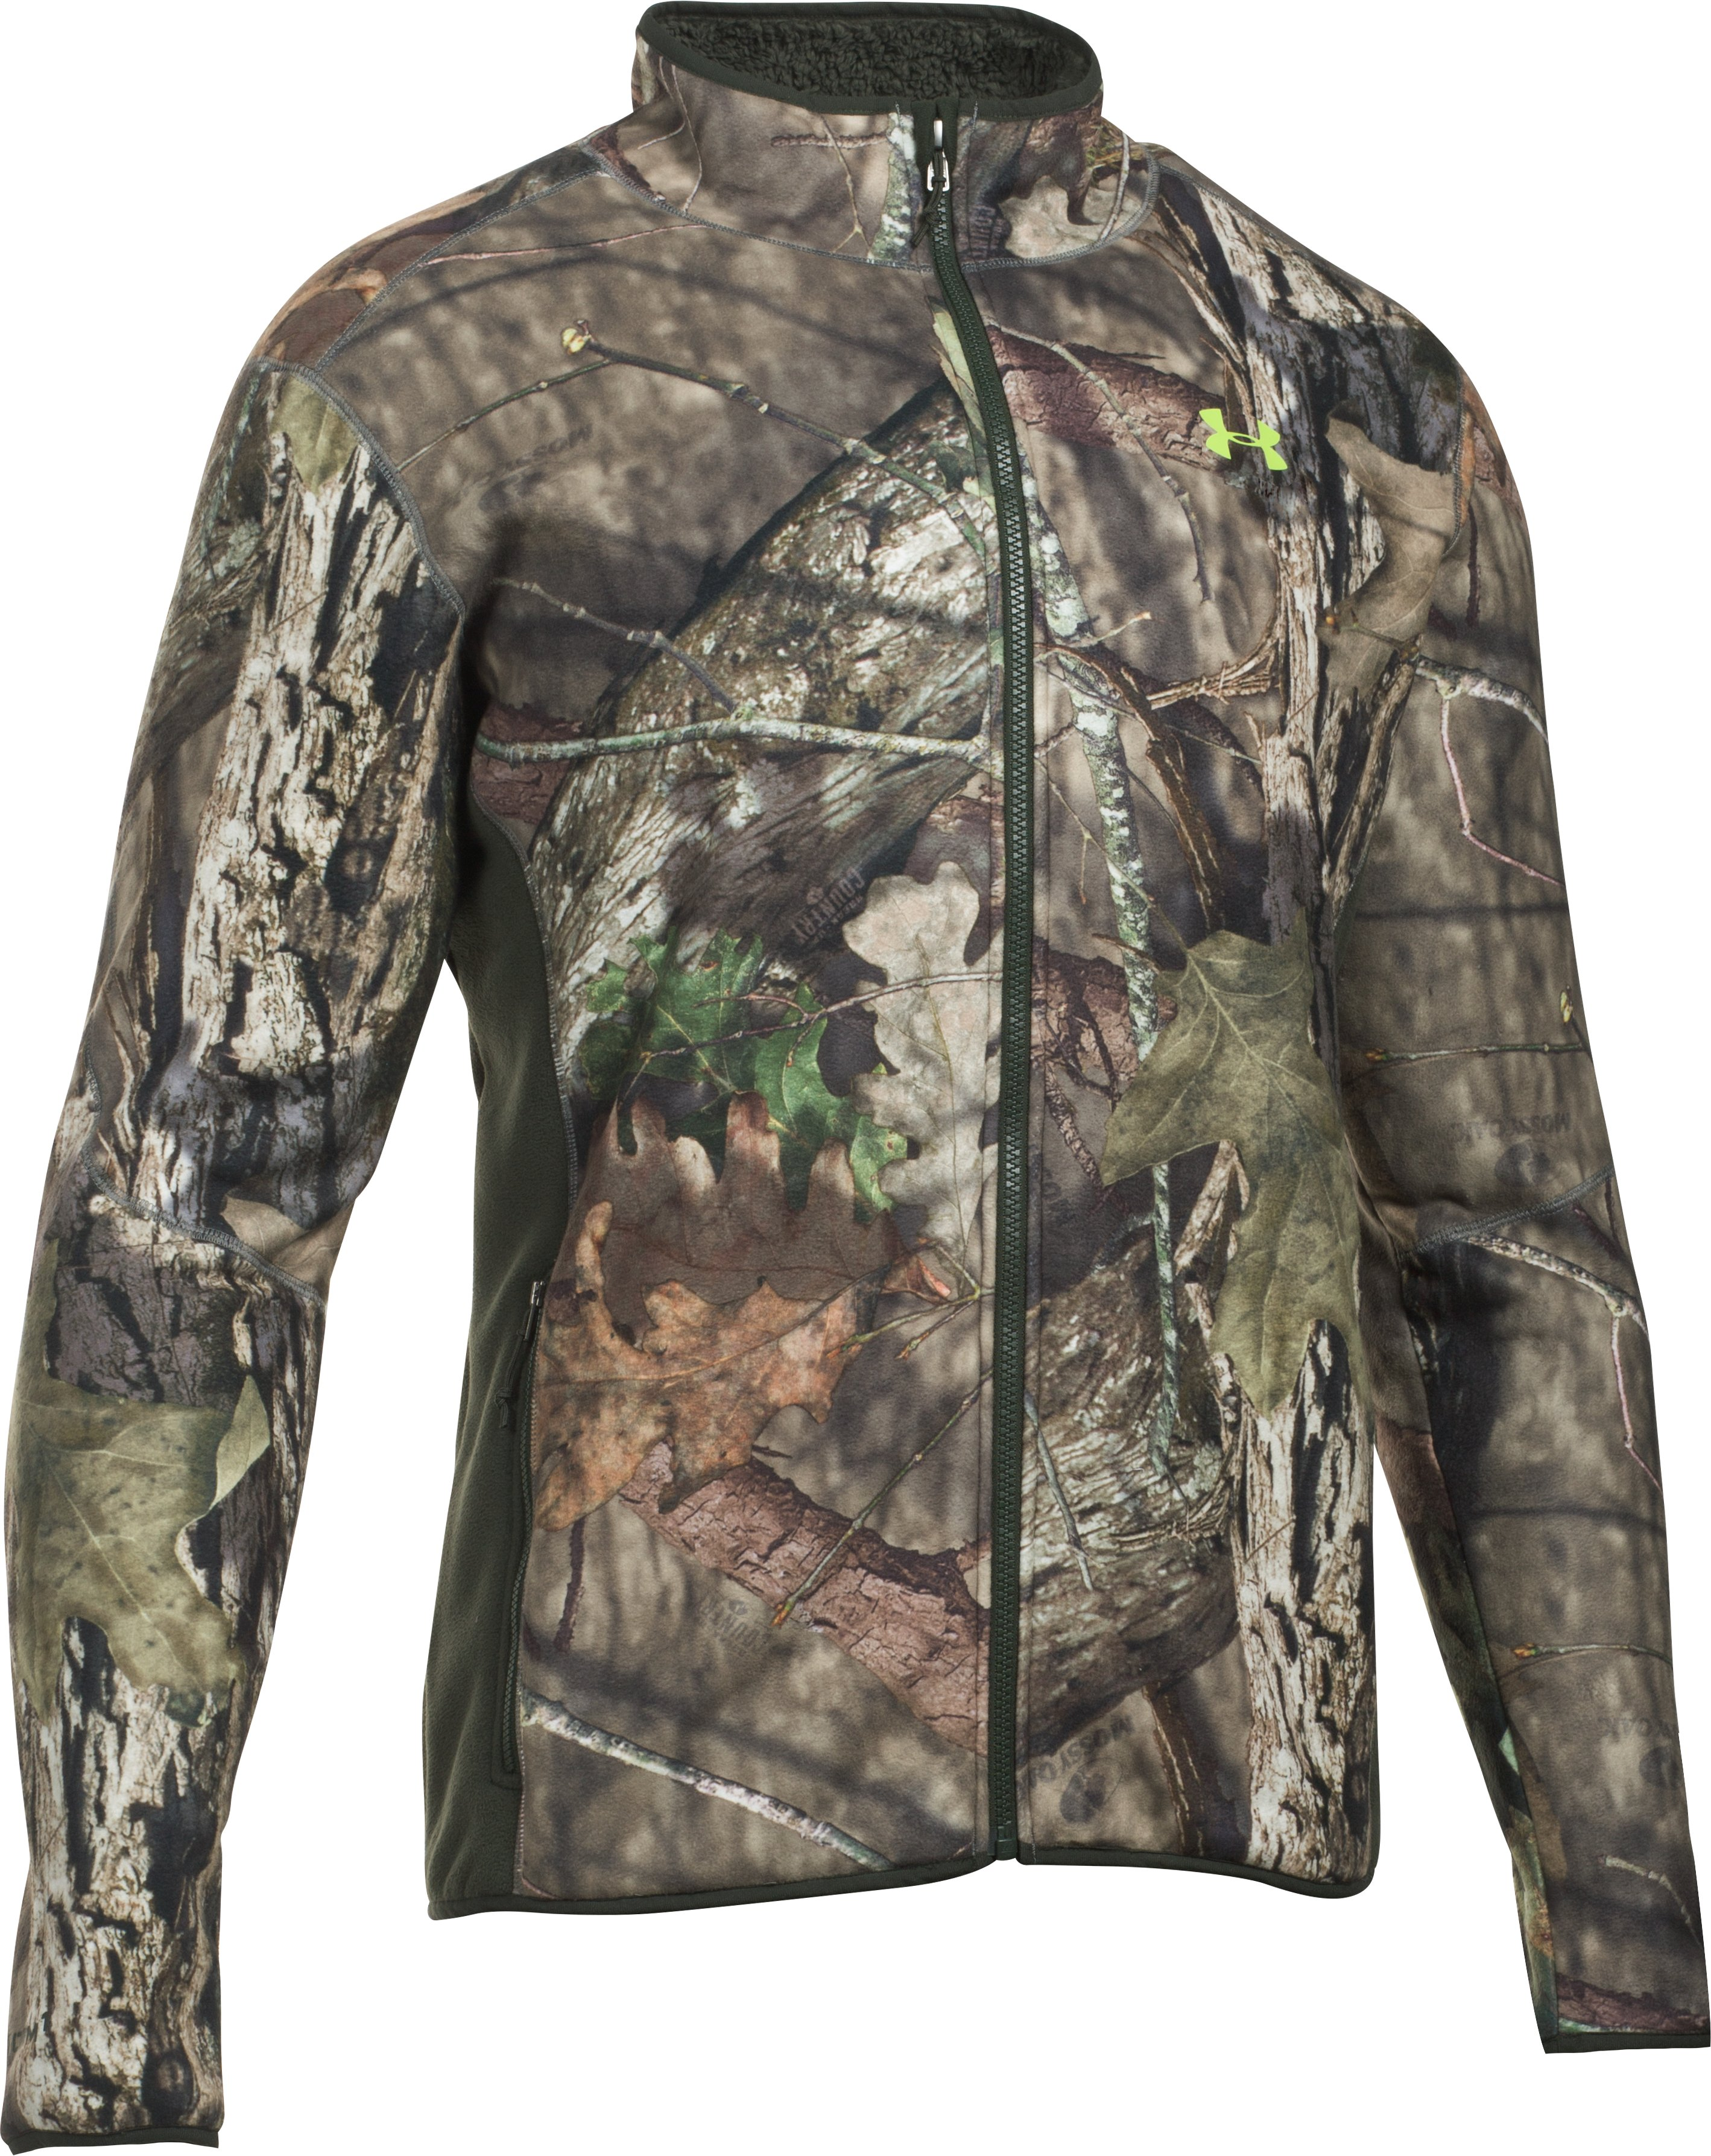 Men's UA Stealth Fleece Jacket, MOSSY OAK OPEN COUNTRY